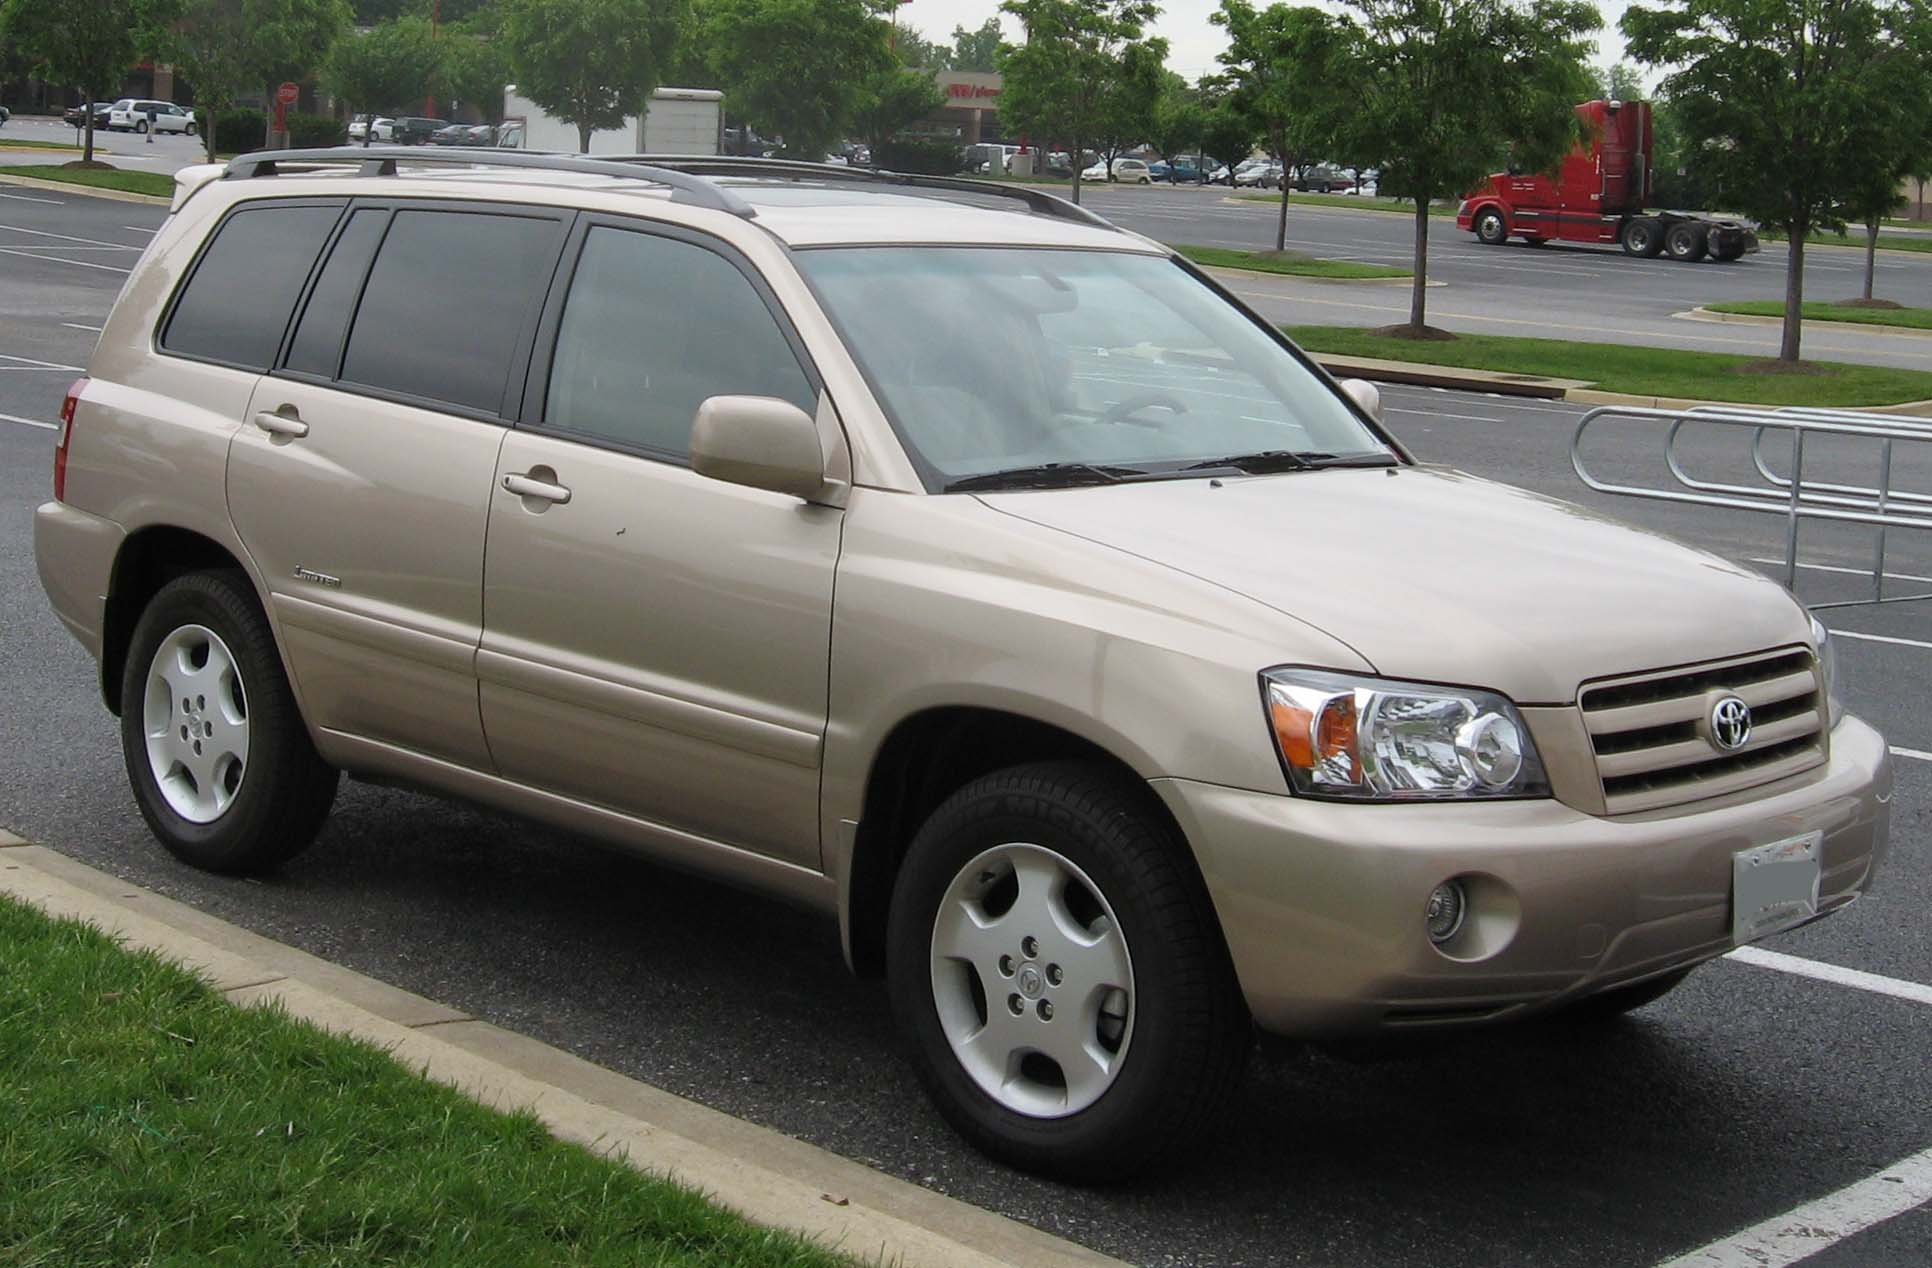 file0406 toyota highlander limitedjpg wikimedia commons